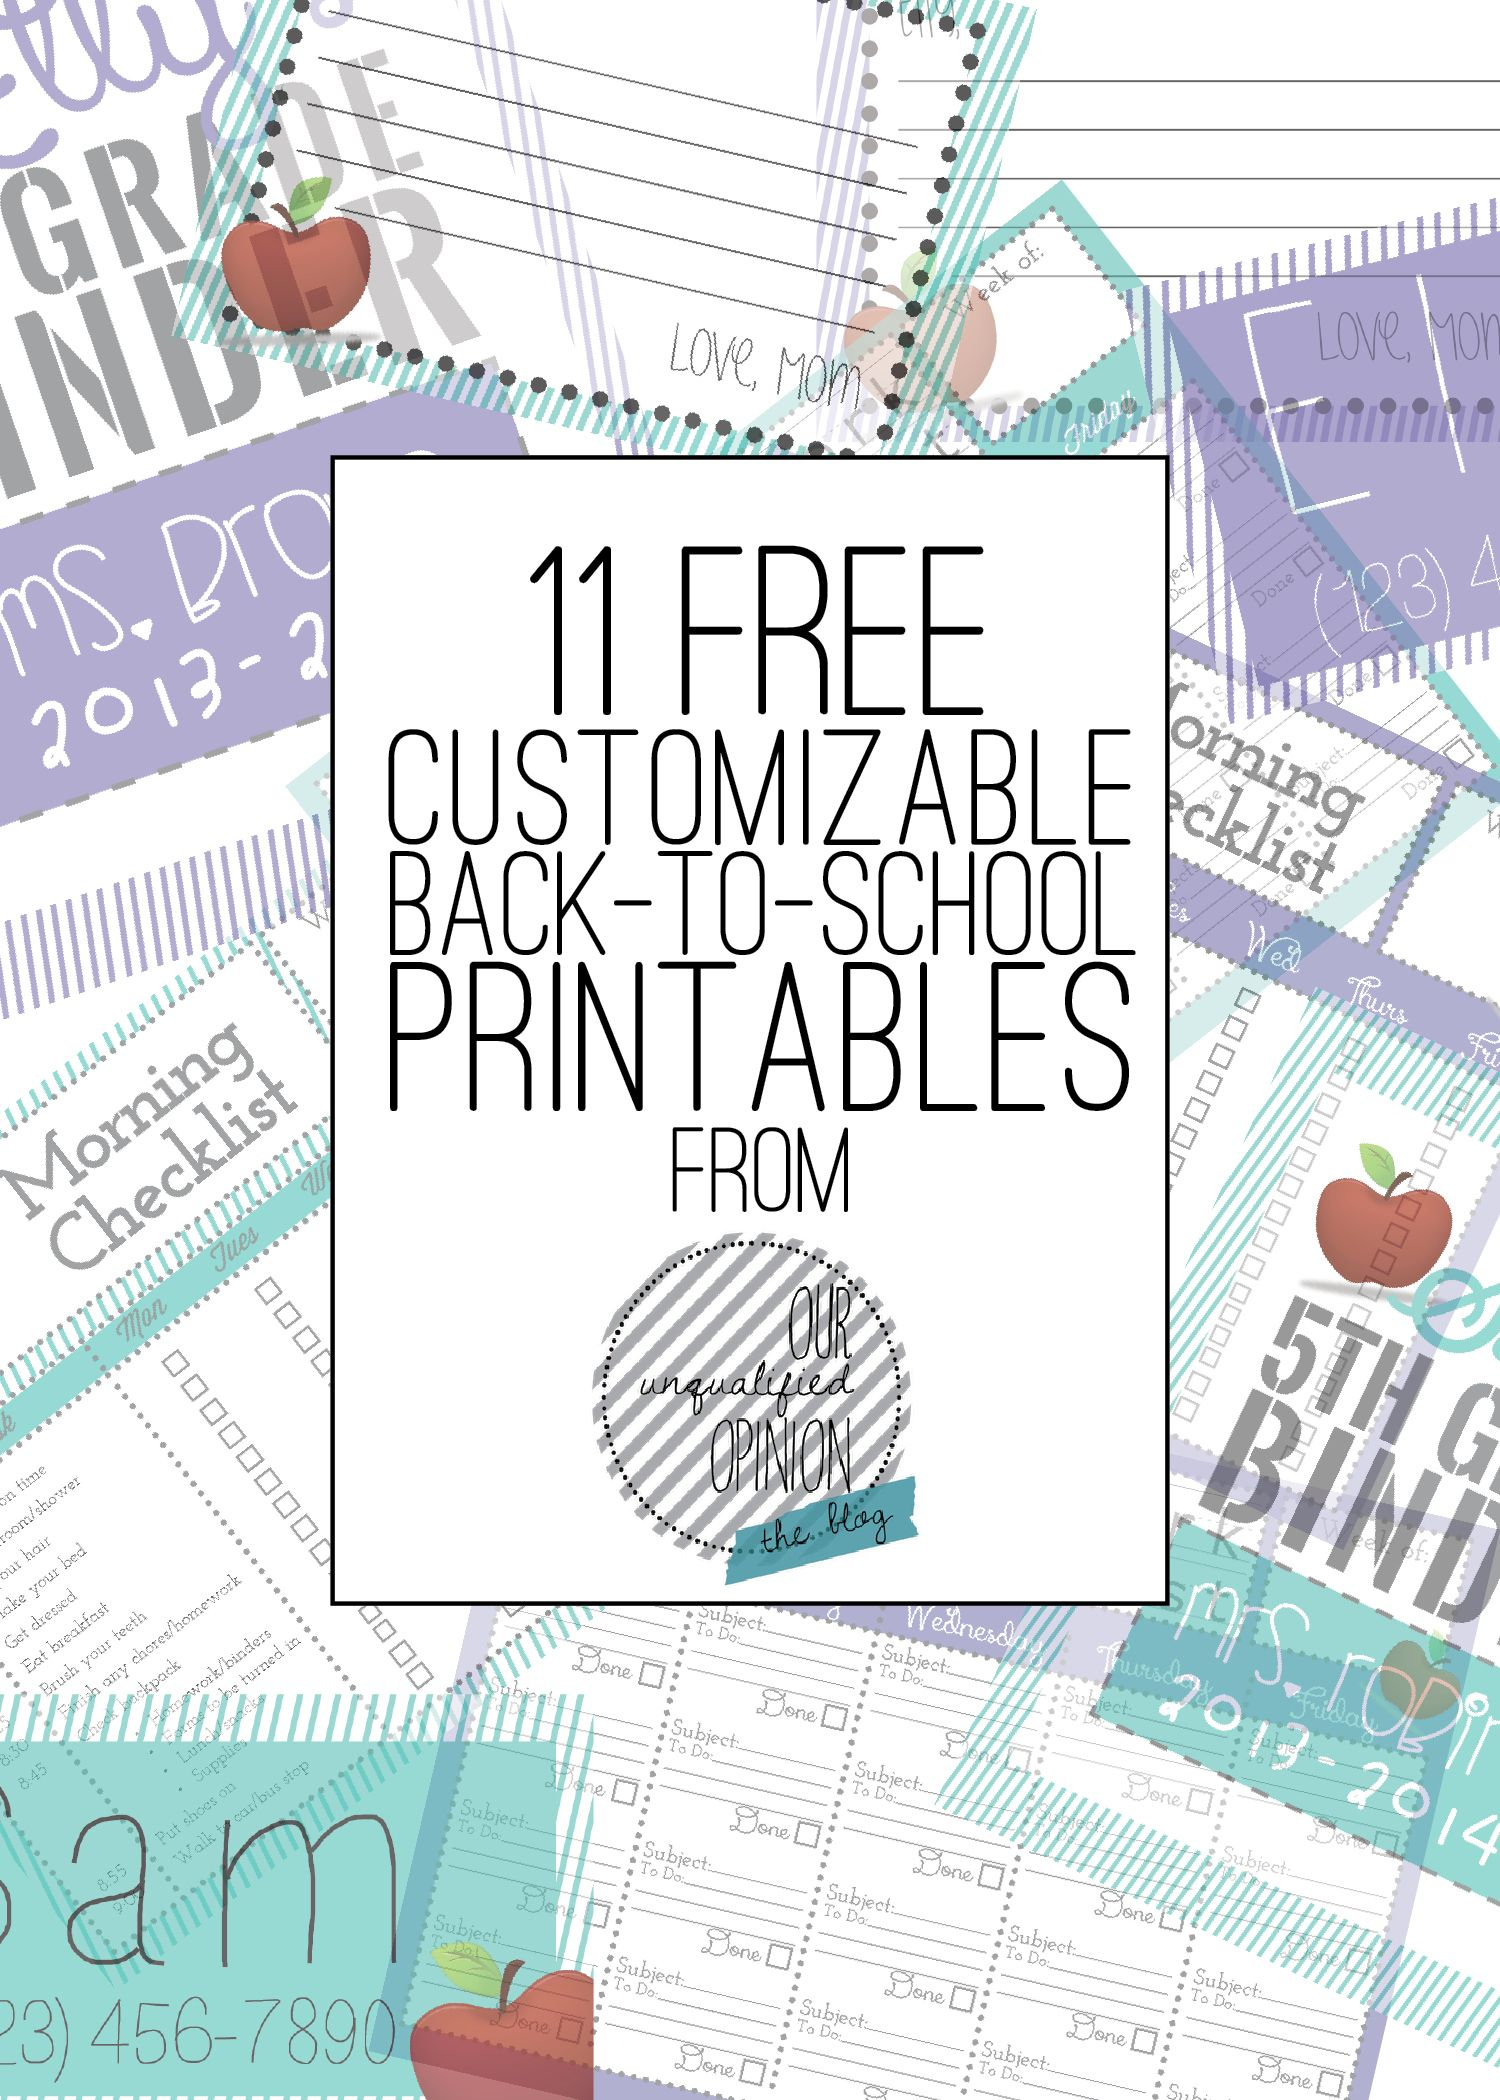 Free Customizable Back To School Printables Ourunqualifiedopinion